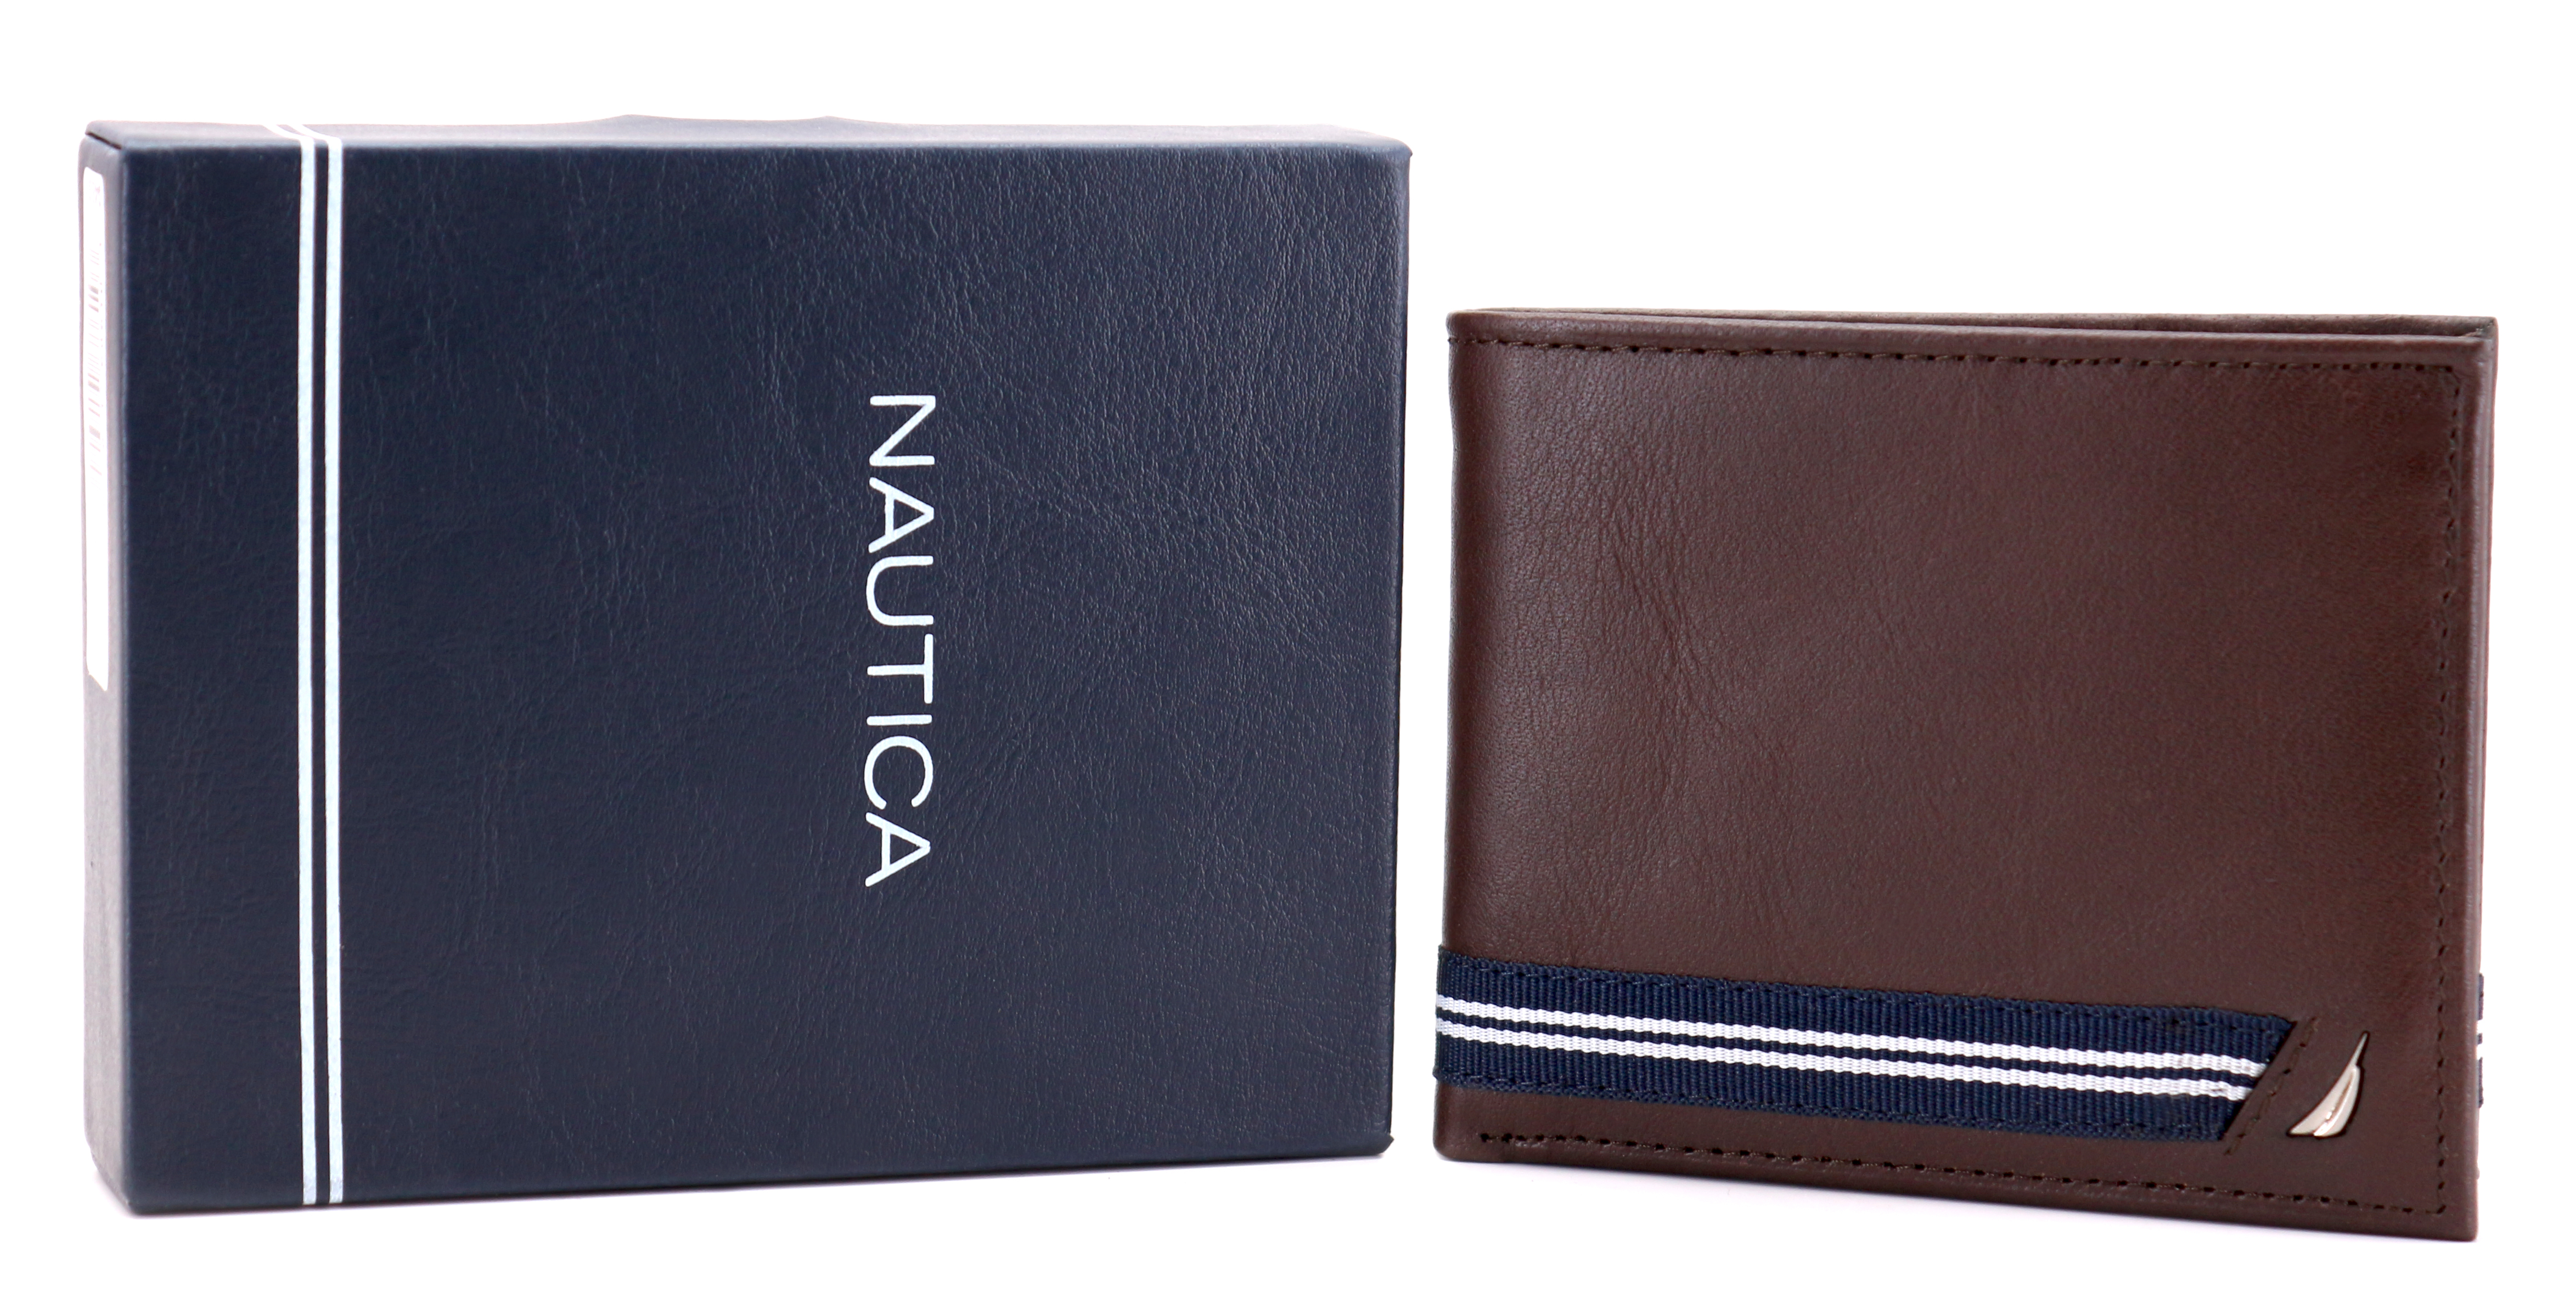 Nautica-Men-039-s-Genuine-Leather-Credit-Card-ID-Double-Billfold-Passcase-Wallet thumbnail 20